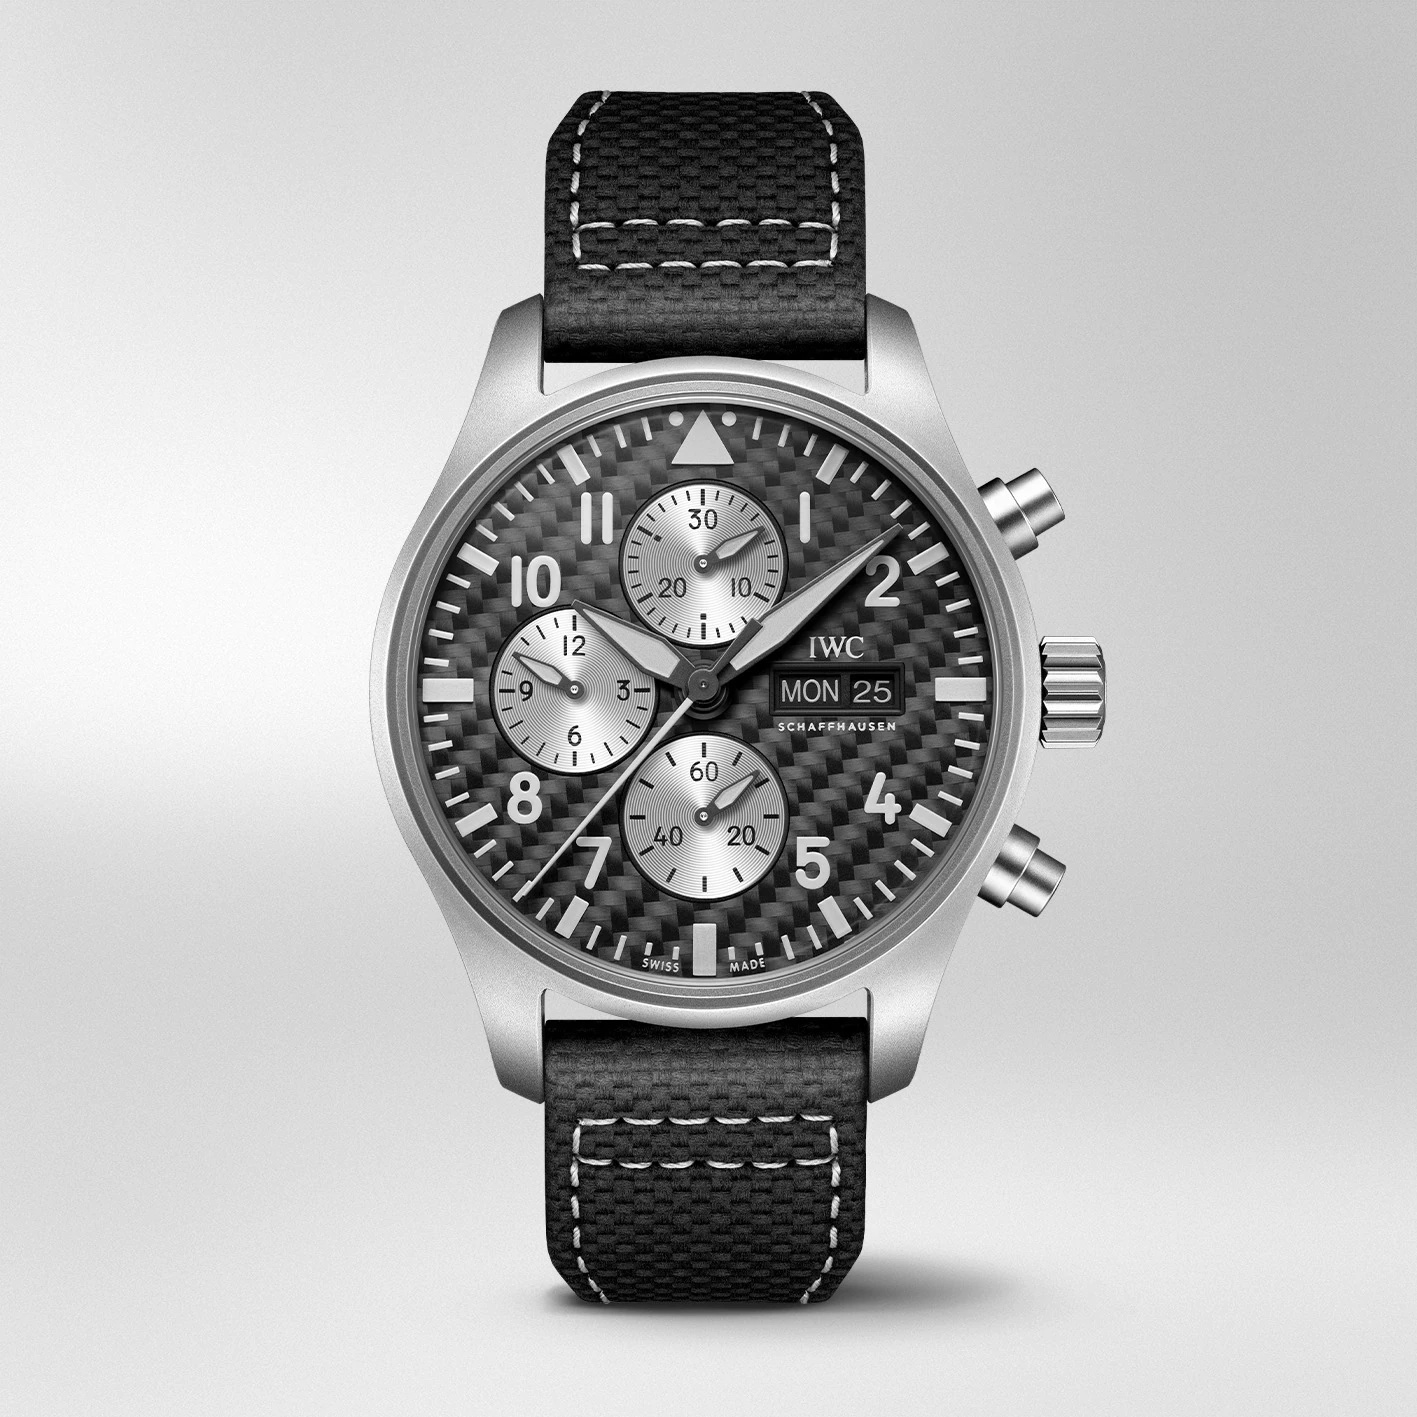 IWC Pilot's Watch Chronograph Edition AMG IW377903 Frontal